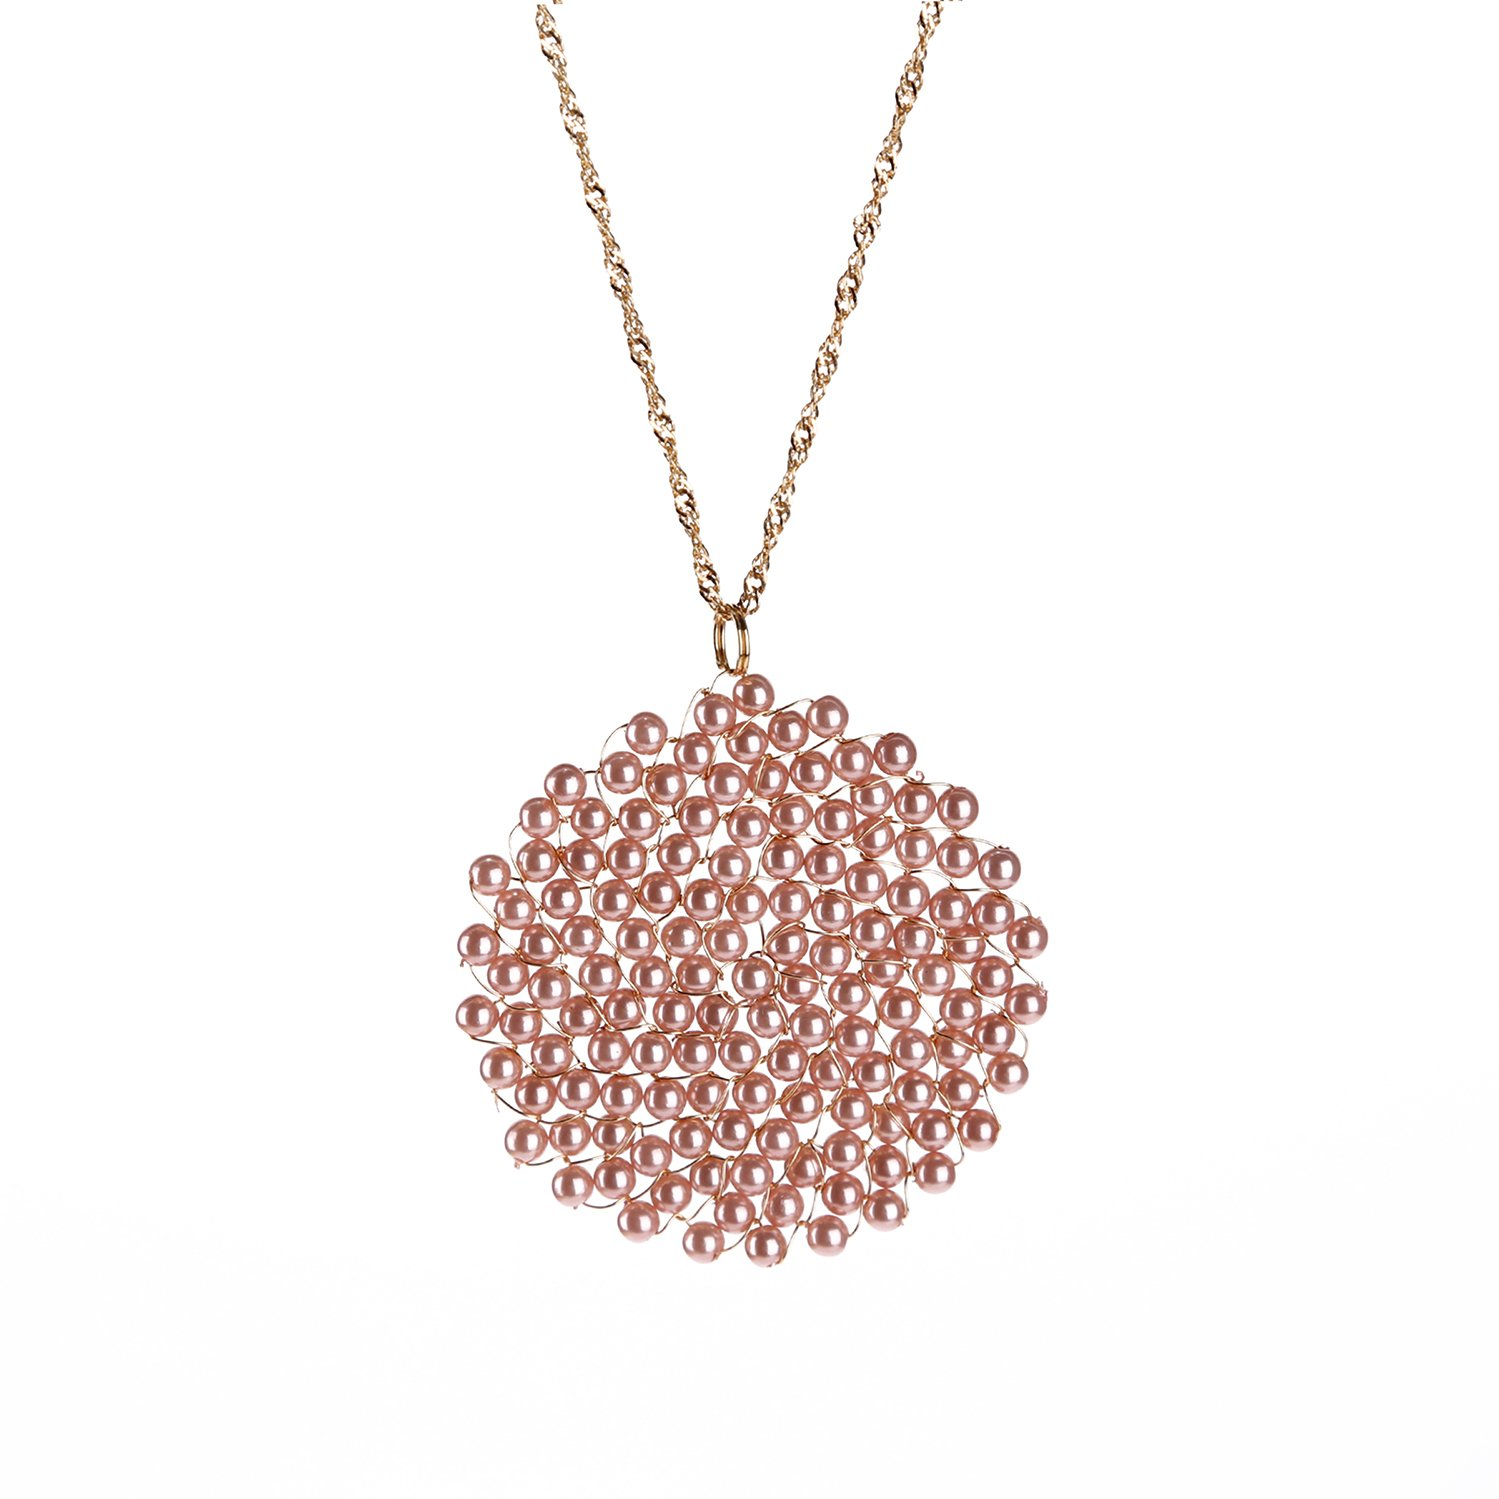 Niumike Circle Disc Pendant Necklaces For Women,100% Hand Made Pink Statement Necklace Set With Gift Box